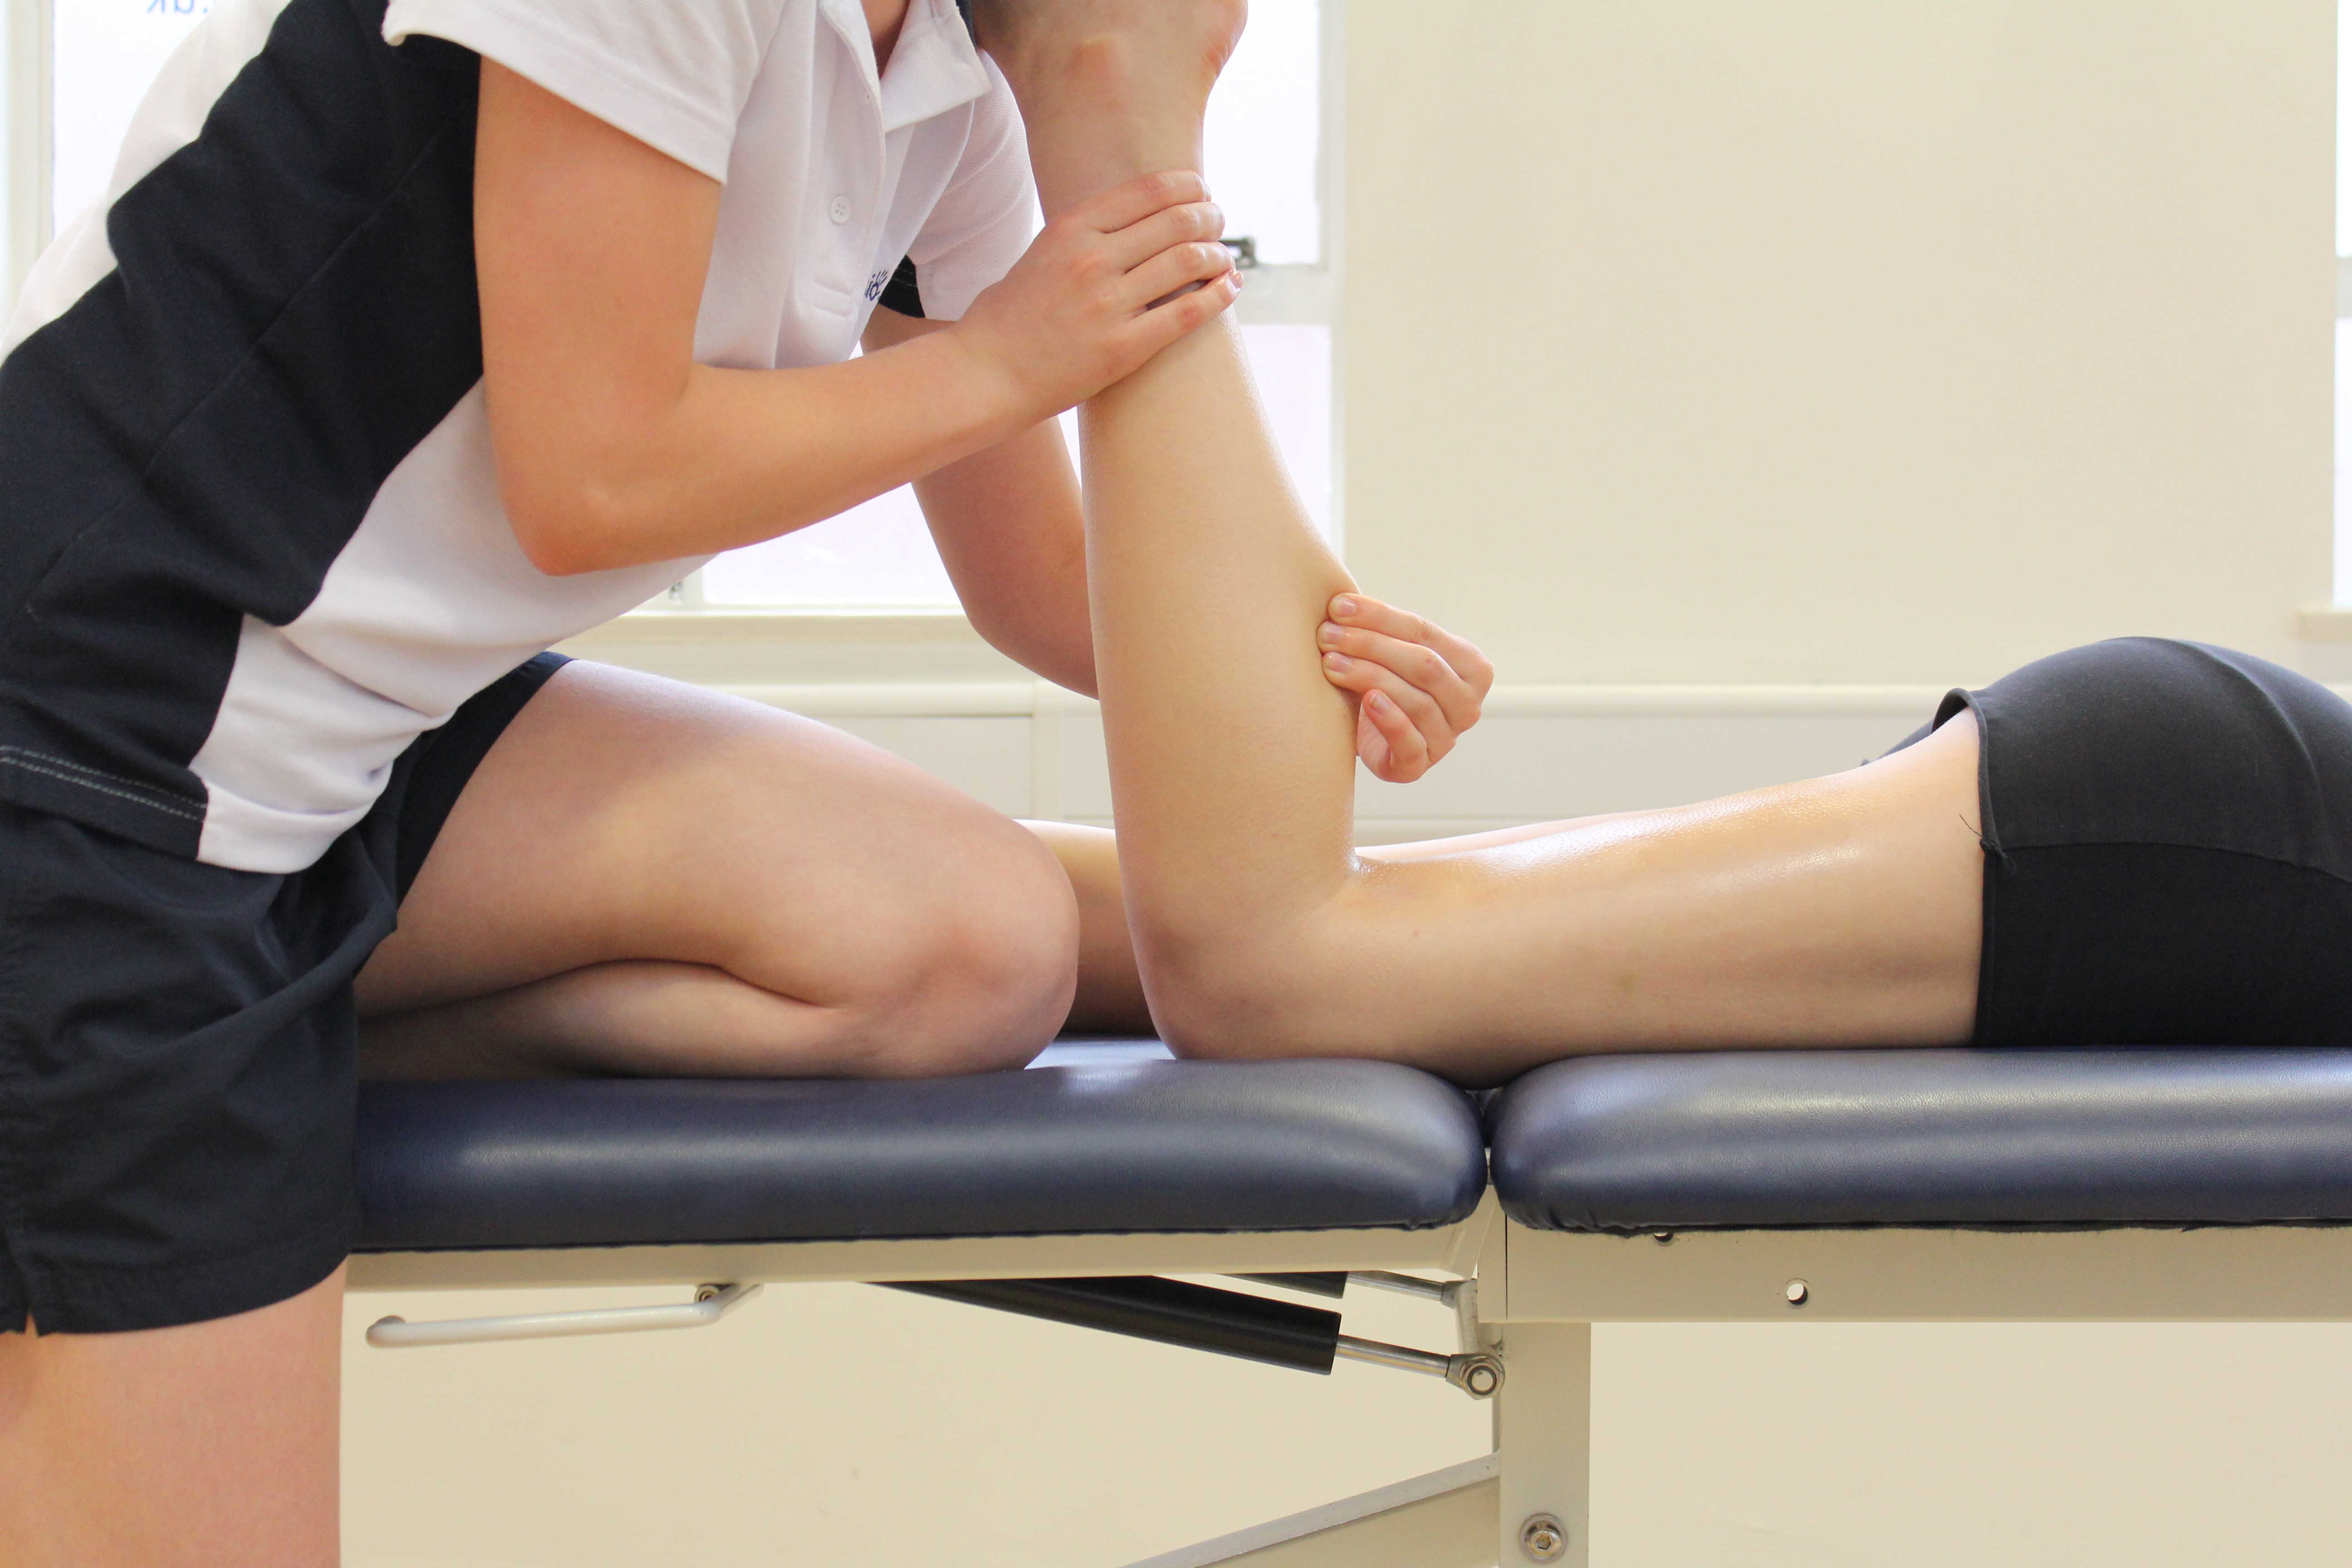 Wringing massage technique applied to gastrocnemius